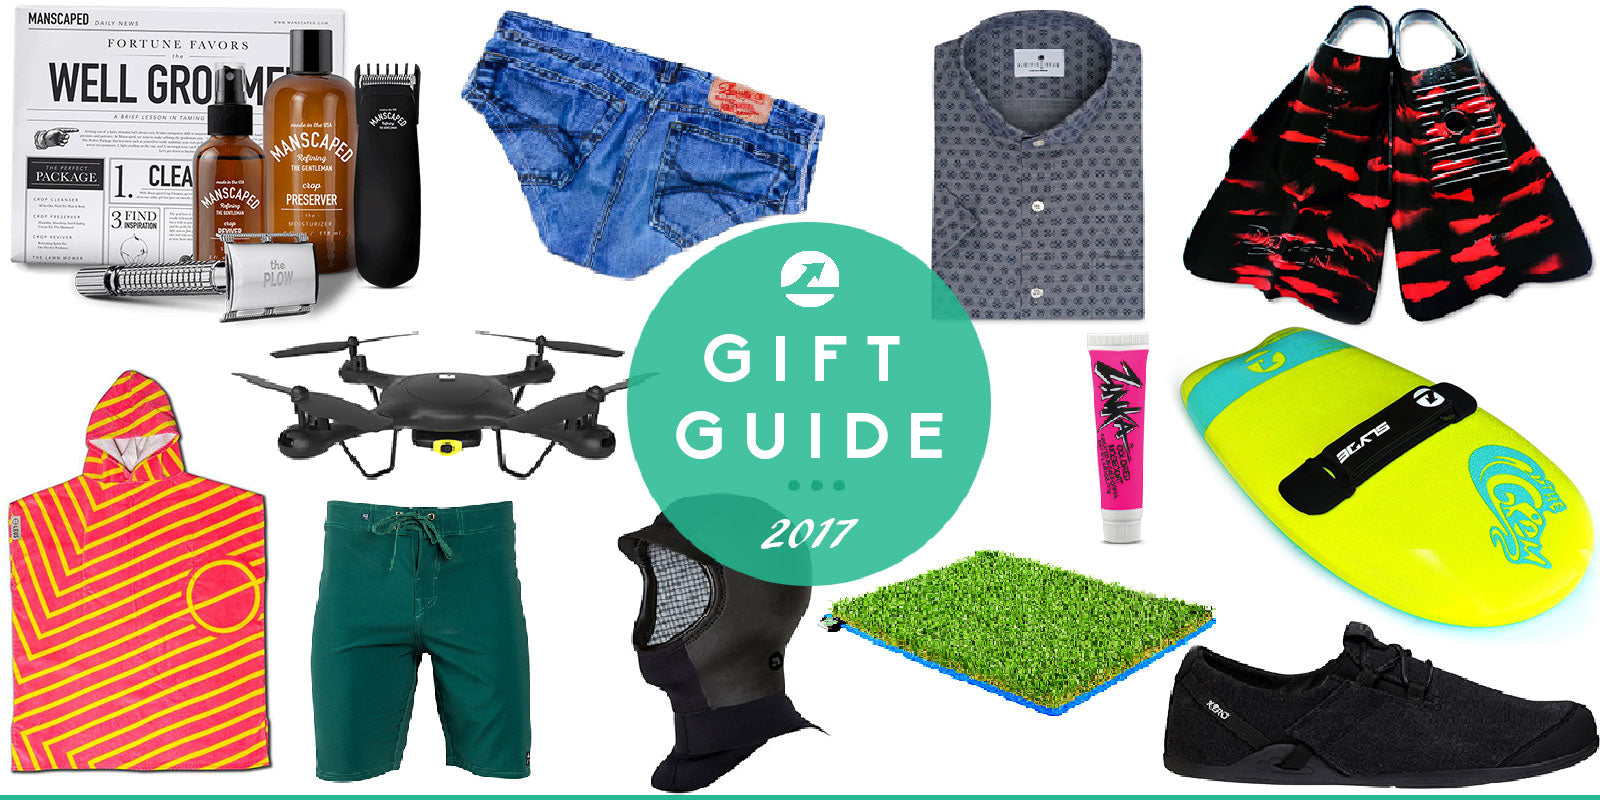 Beach Lovers Gift Guide 2017:12 Epic Holiday Gifts For A Beach Bum